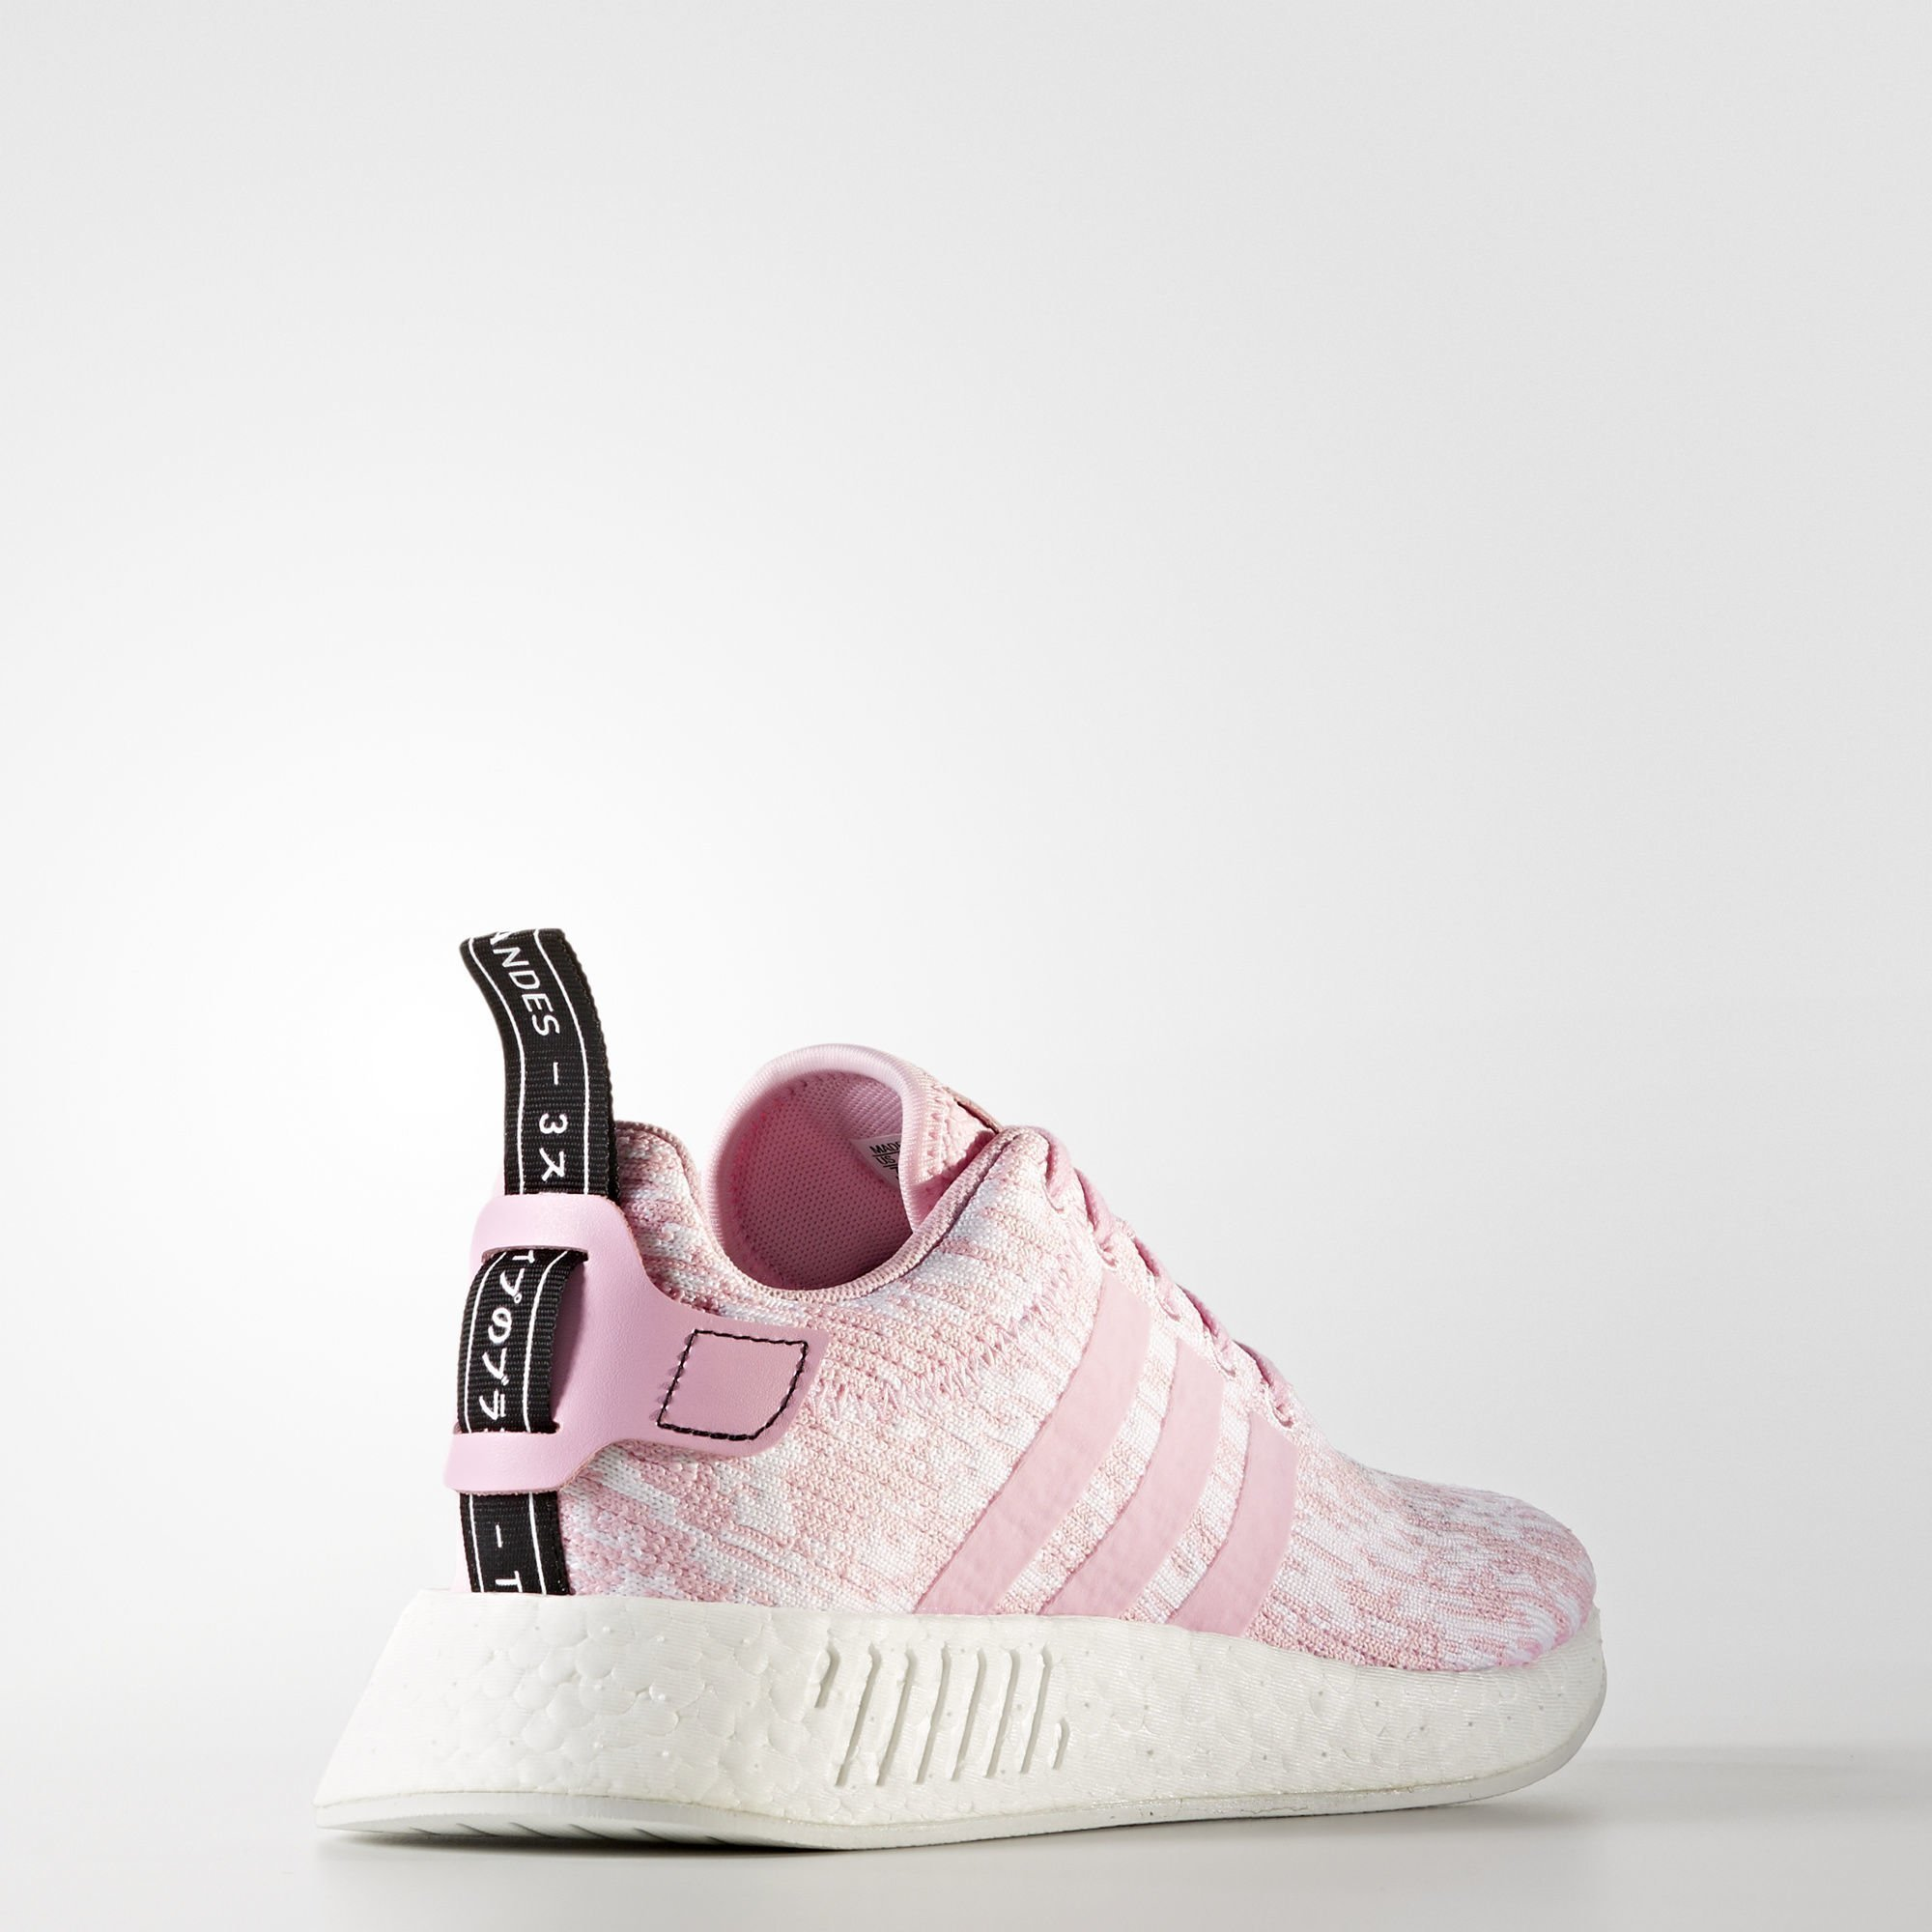 adidas NMD R2 Wonder Pink (W) (BY9315)